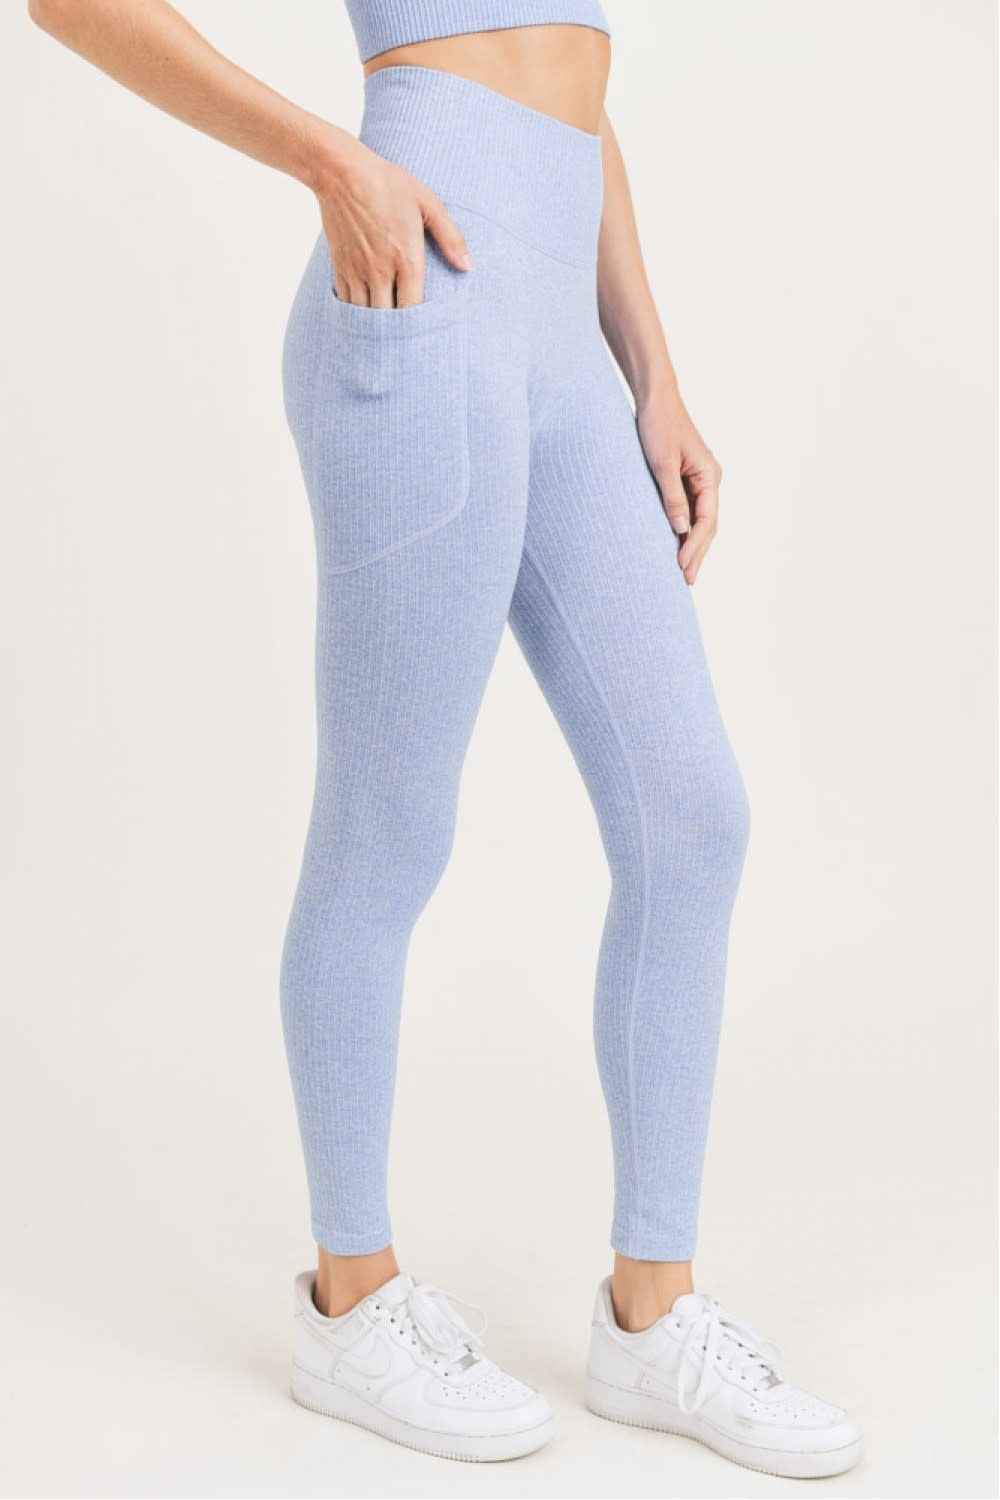 MONO B SEAMLESS RIBBED LEGGINGS - BLUE